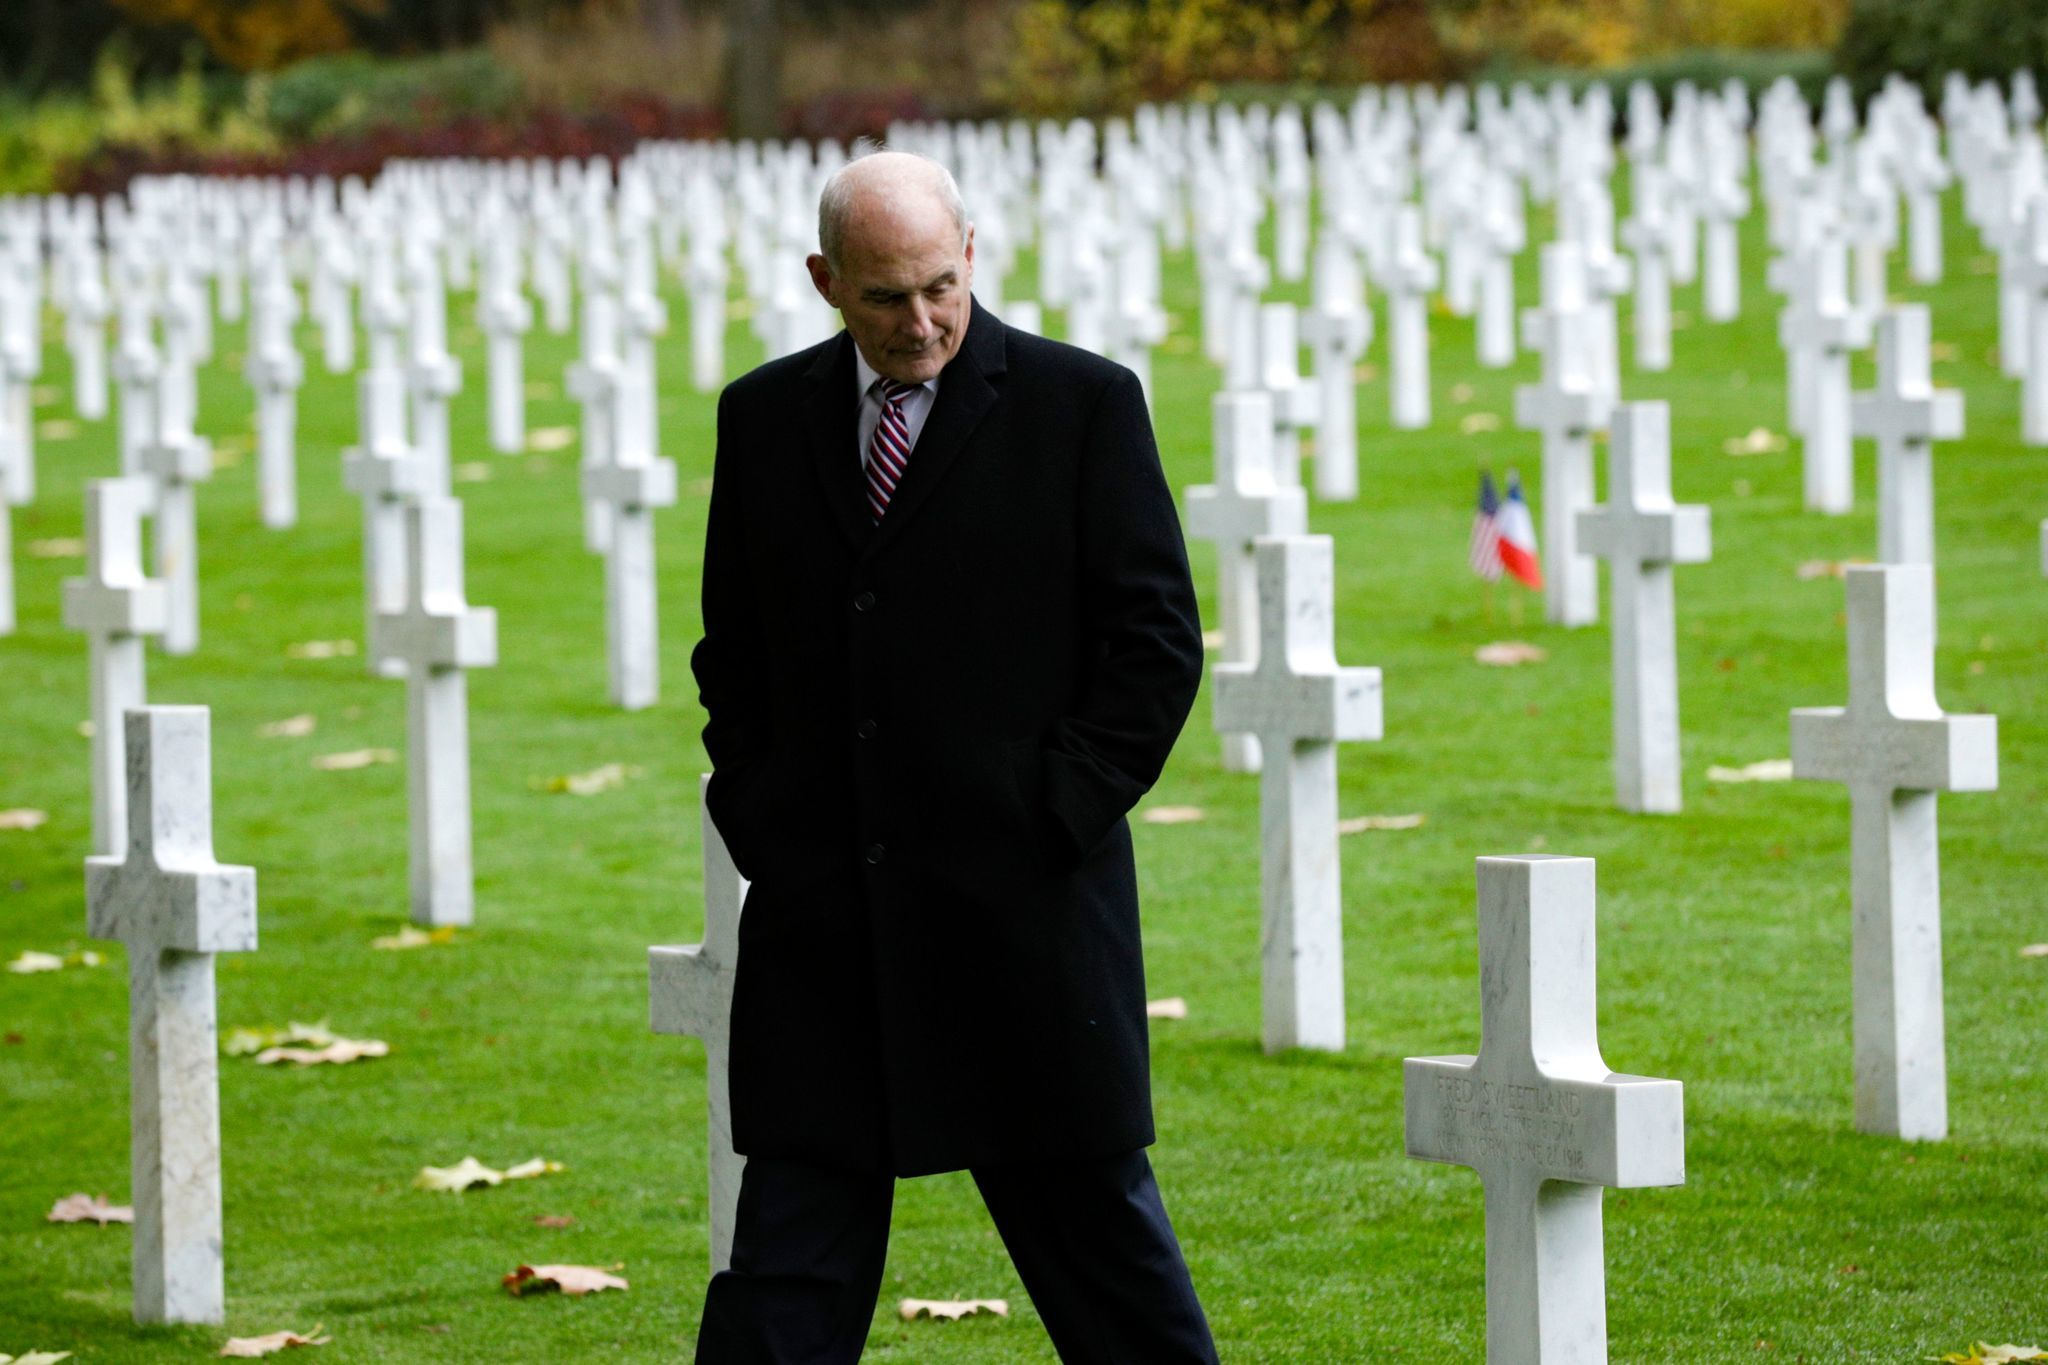 'Real low energy': Critics pile on after Trump cancels visit to U.S. military cemetery outside Paris